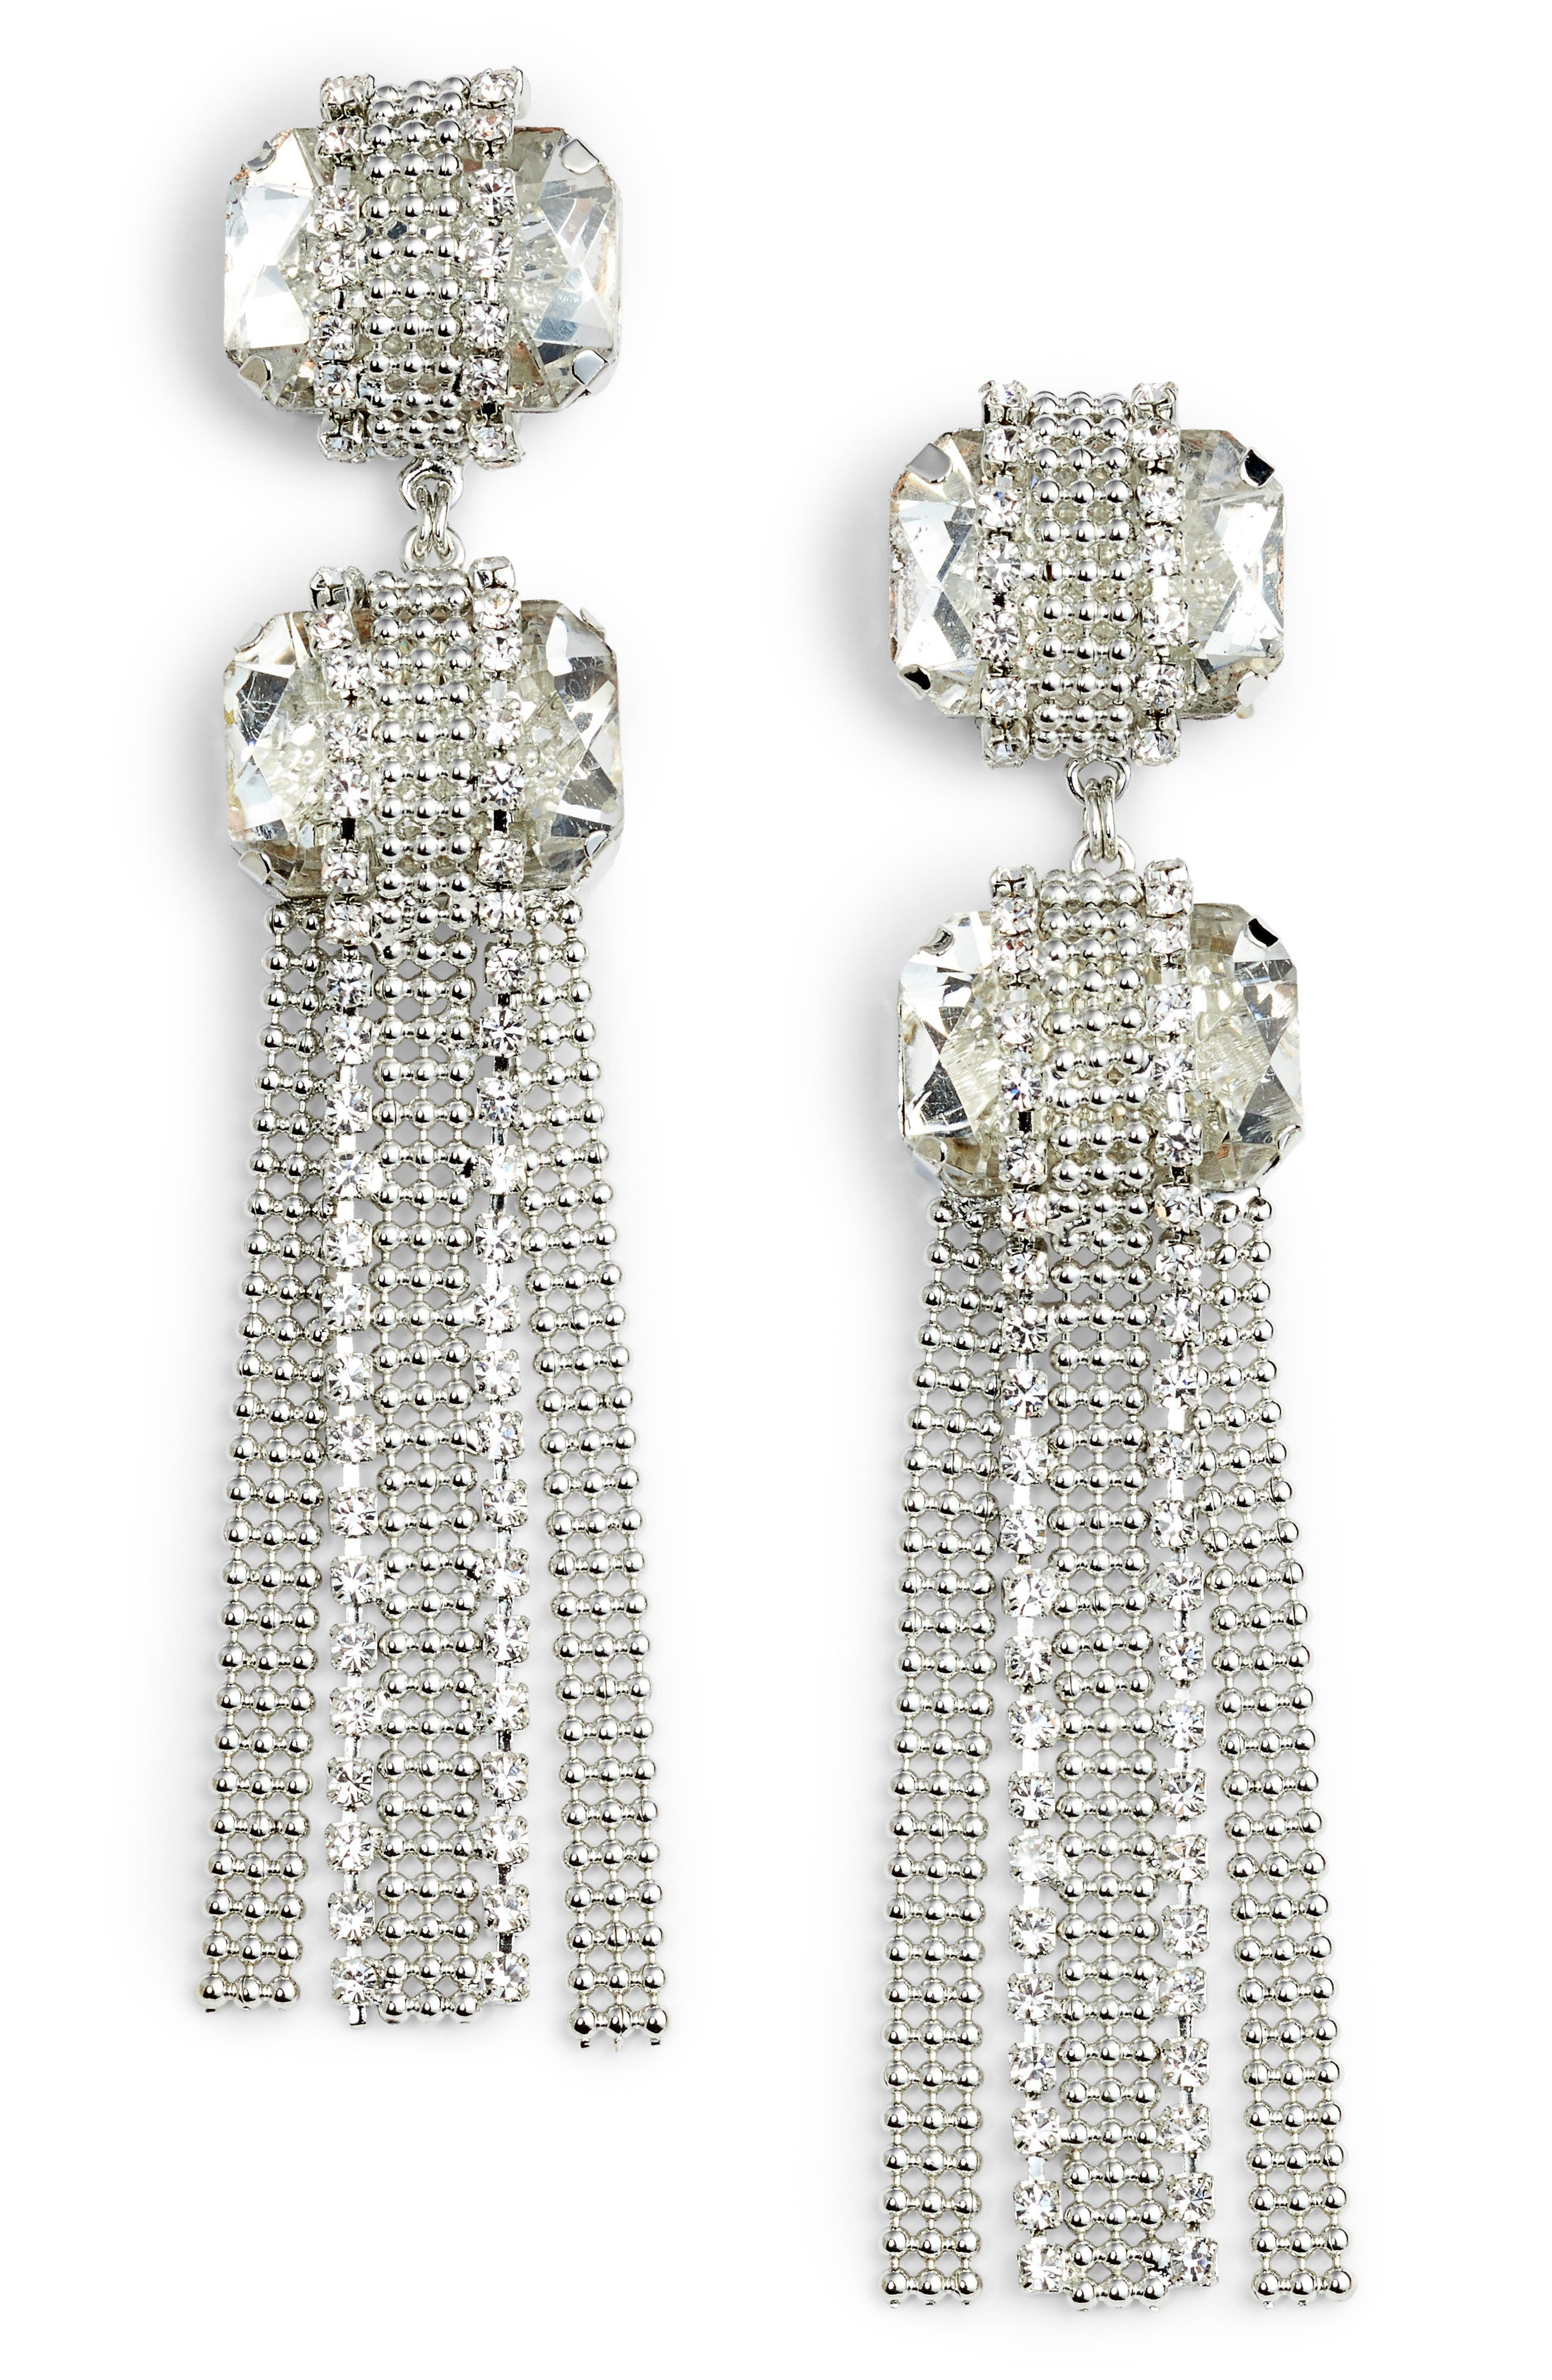 Alternate Image 1 Selected - CRISTABELLE Crystal Ball Chain Drop Earrings